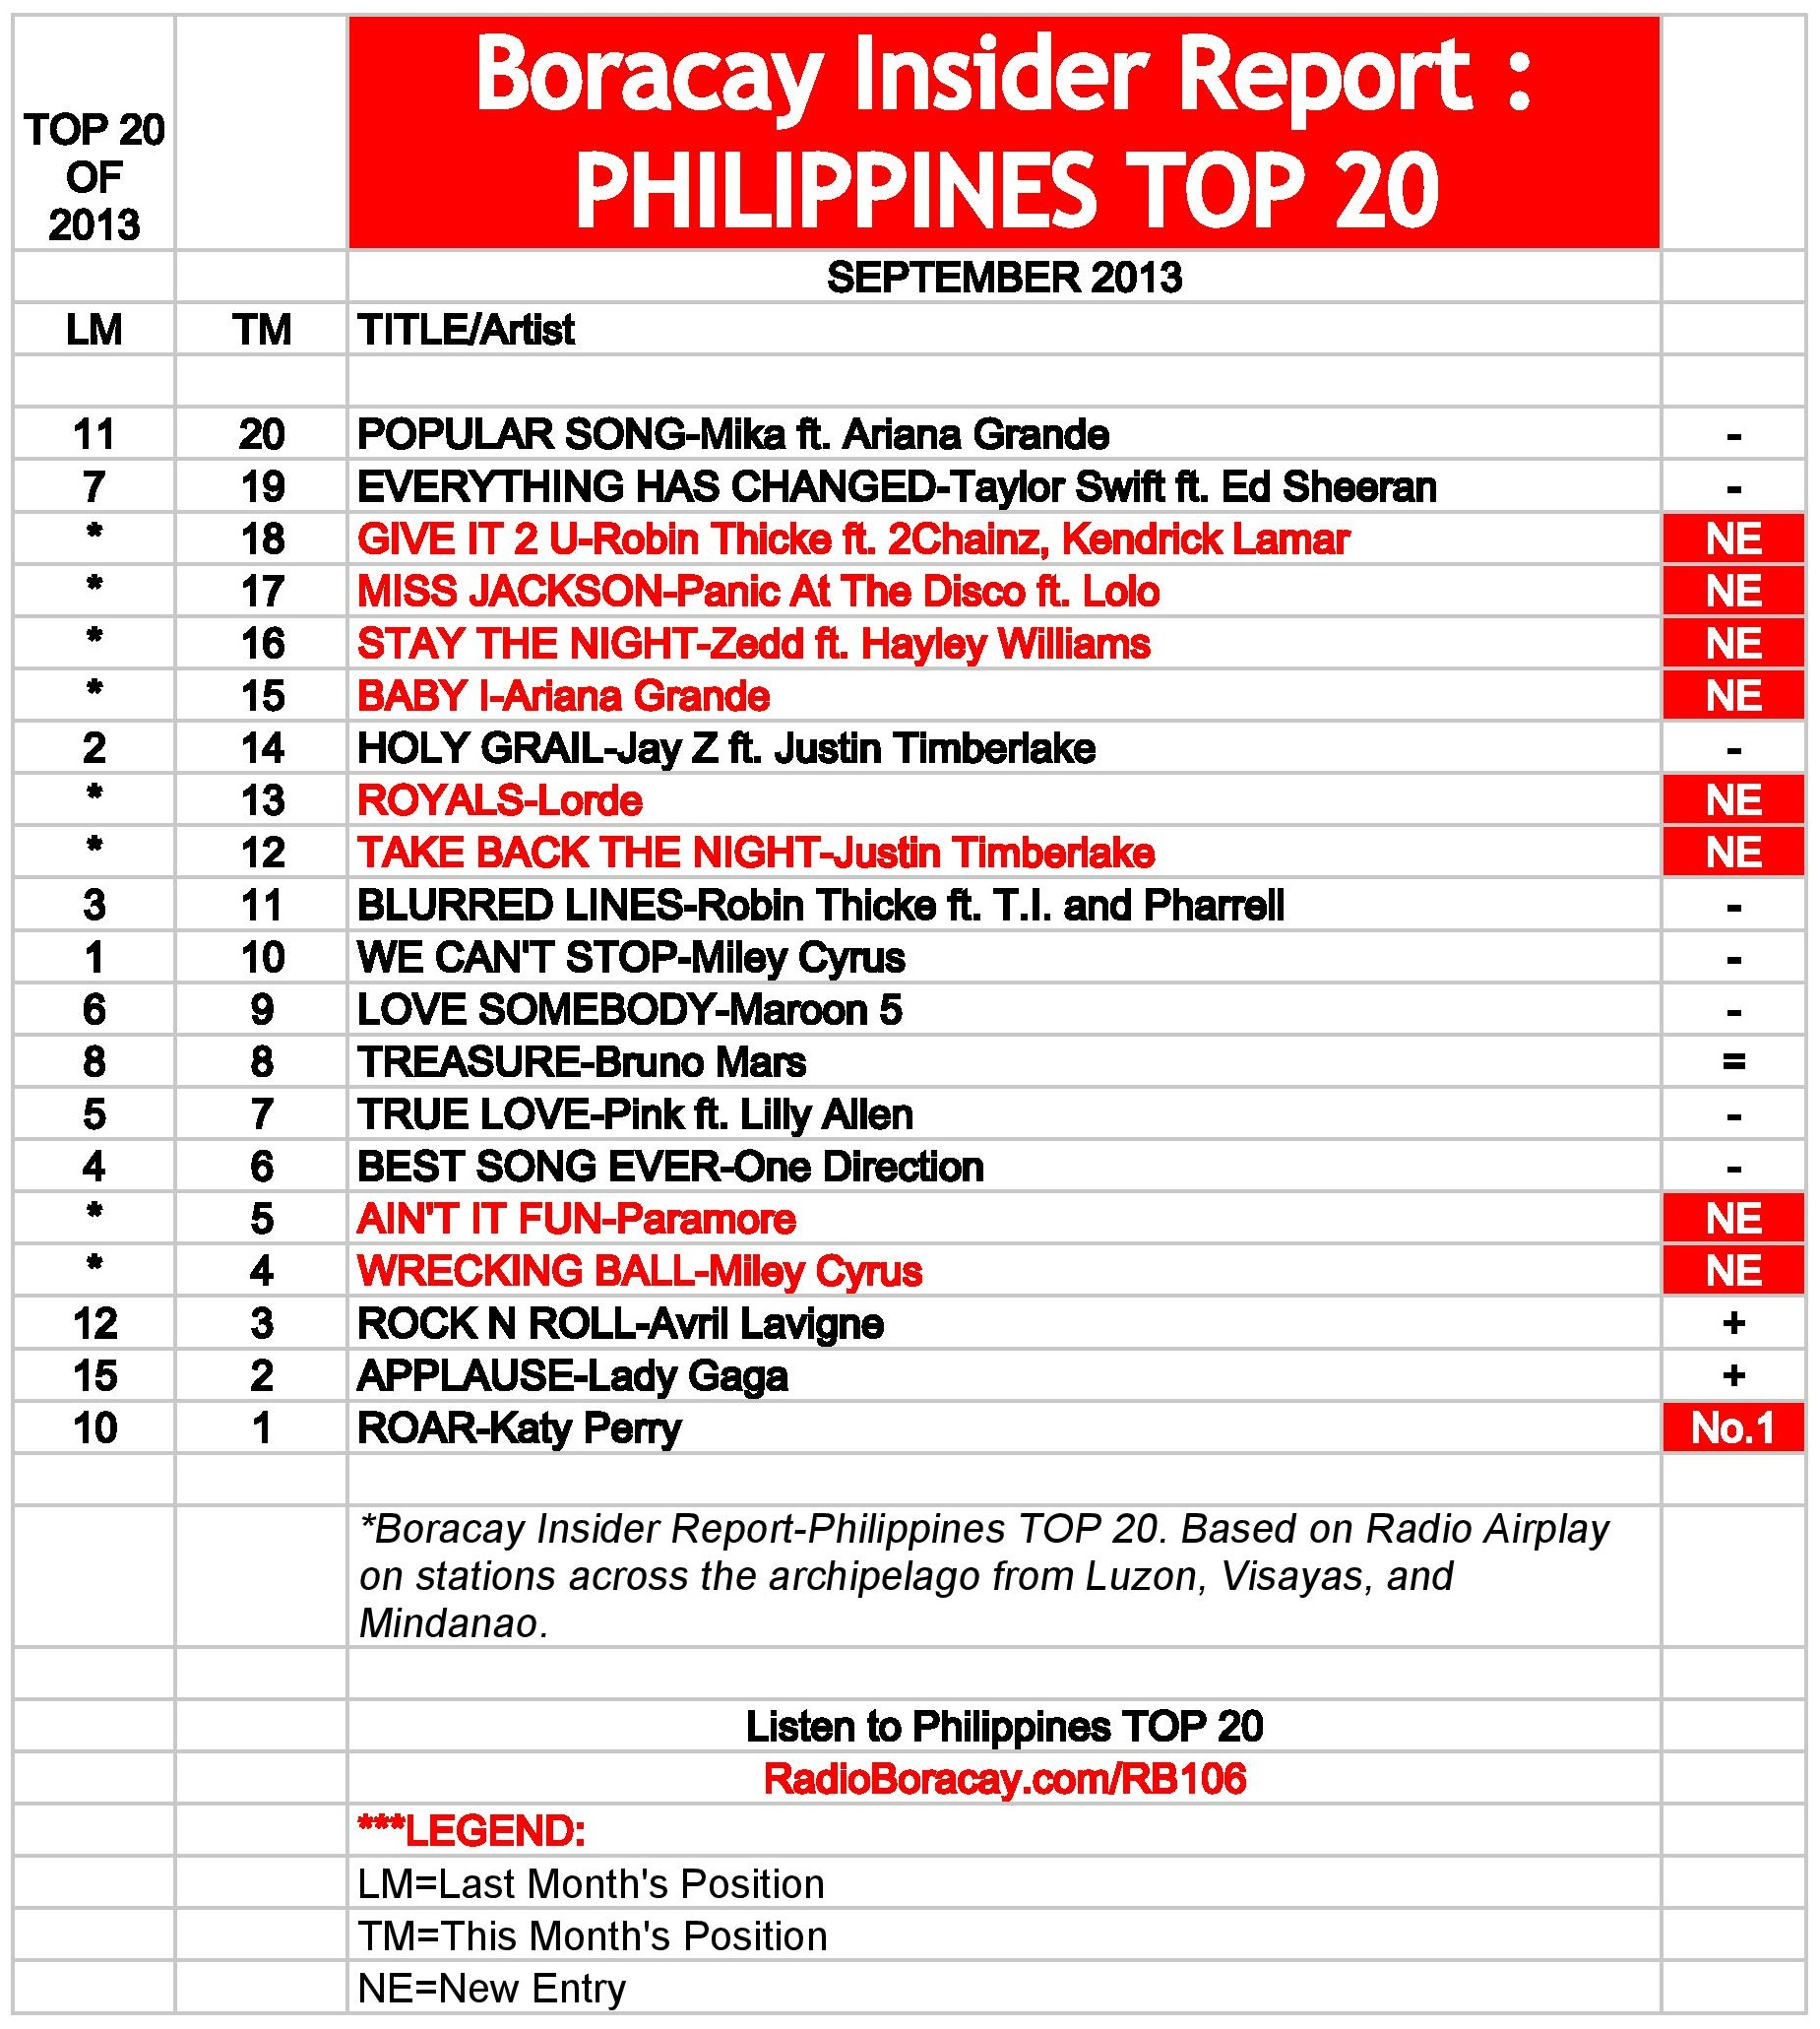 Philippines Top 20 [sep 2013]  Boracay Insider Report